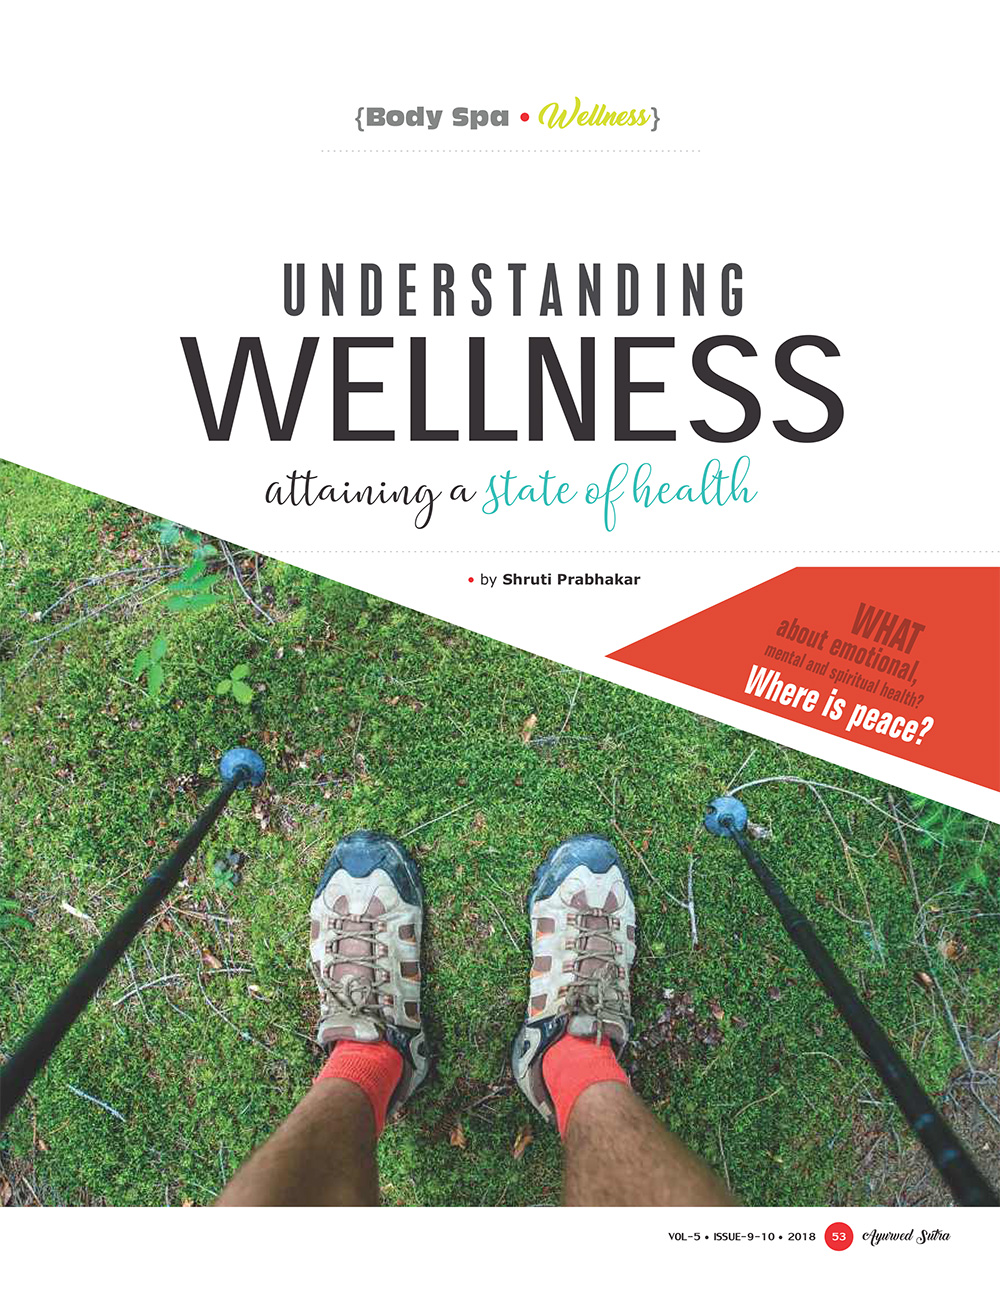 Ayurvedsutra Vol 05 issue 09 10 55 - Understanding Wellness: Attaining a State of Health